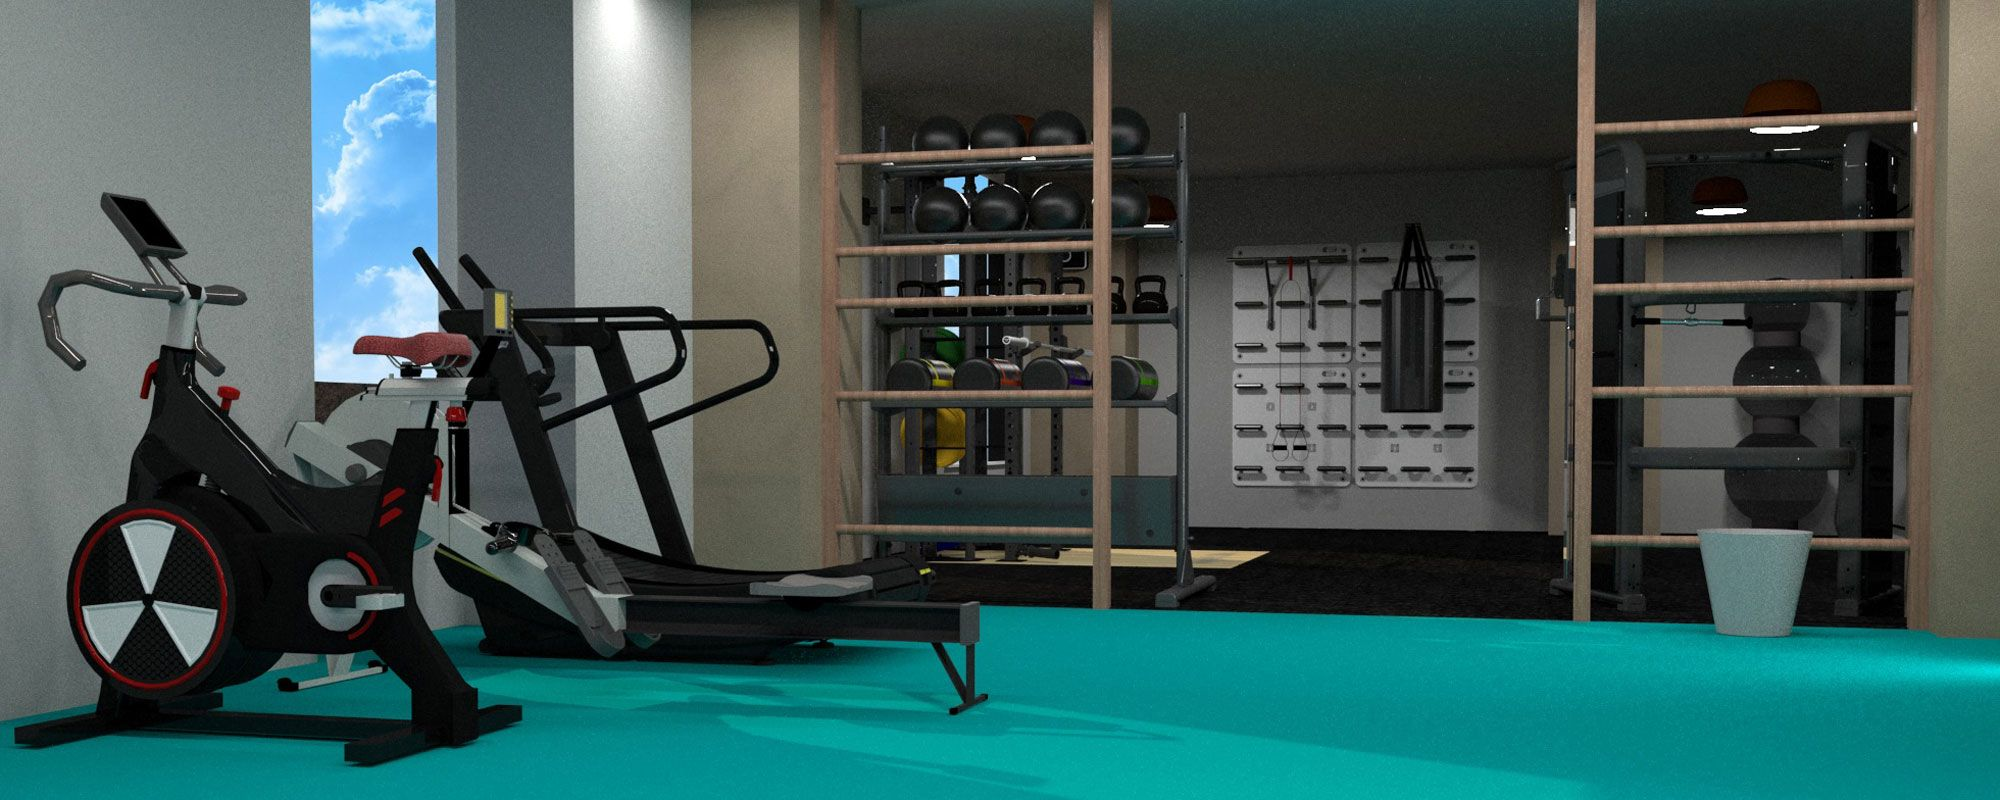 Overhead view of new gym with wide range of fitness machines